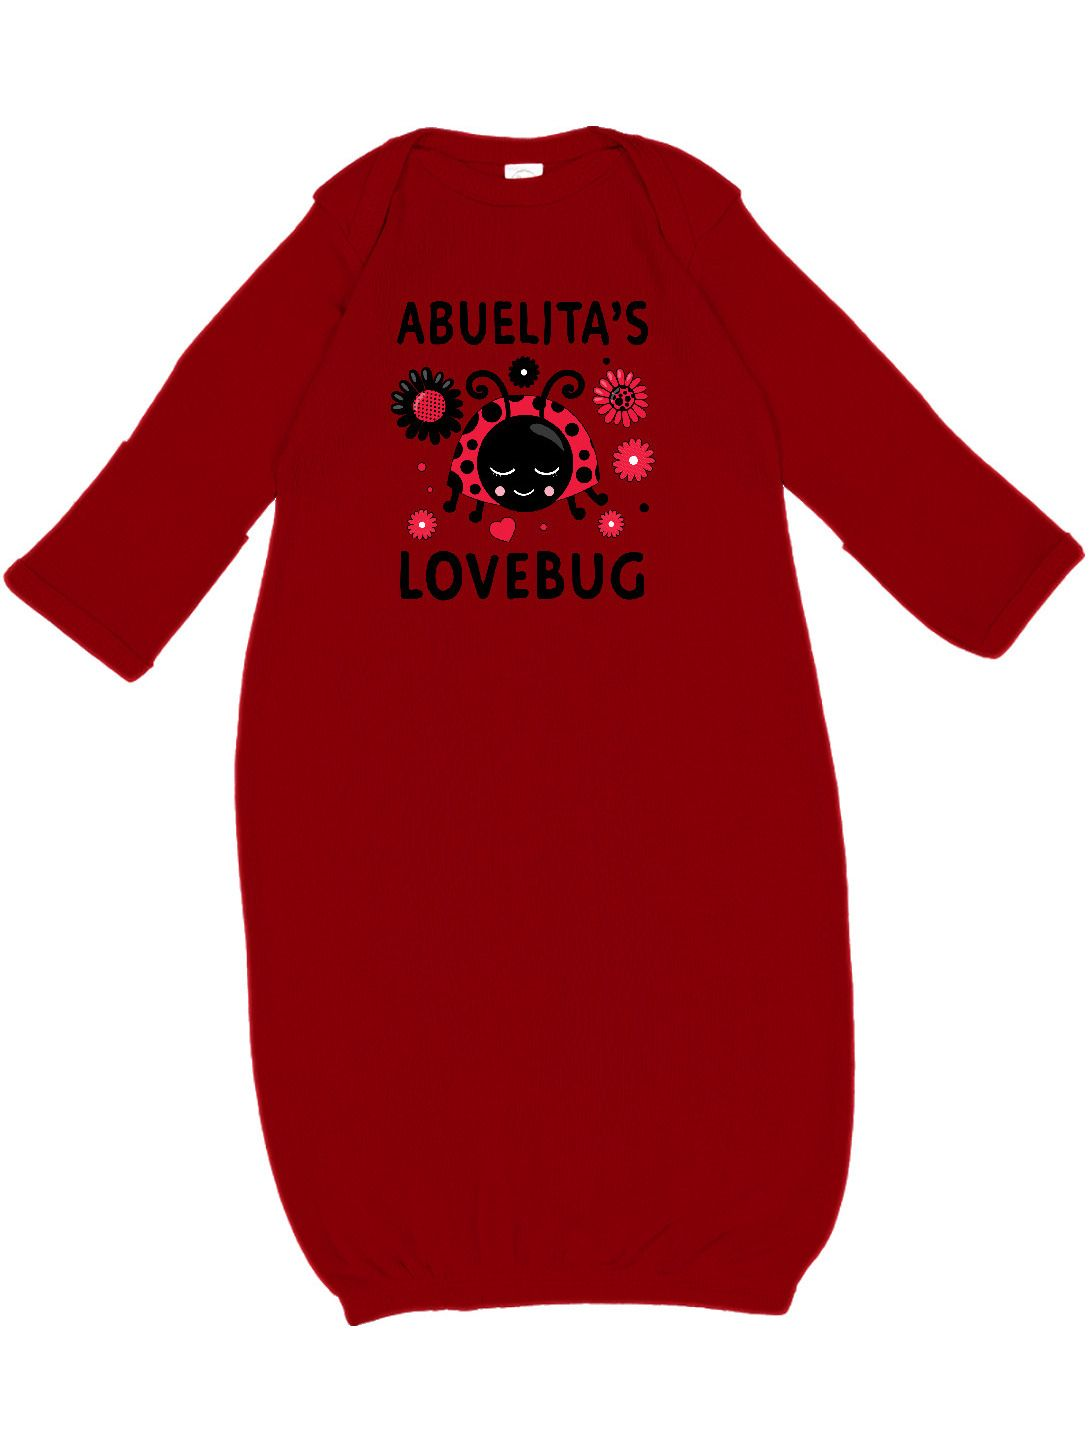 Adorable Valentine's Day Abuelita's Lovebug Newborn Layette with flowers. Cute Valentines Day themed baby shower gift for your granddaughter!